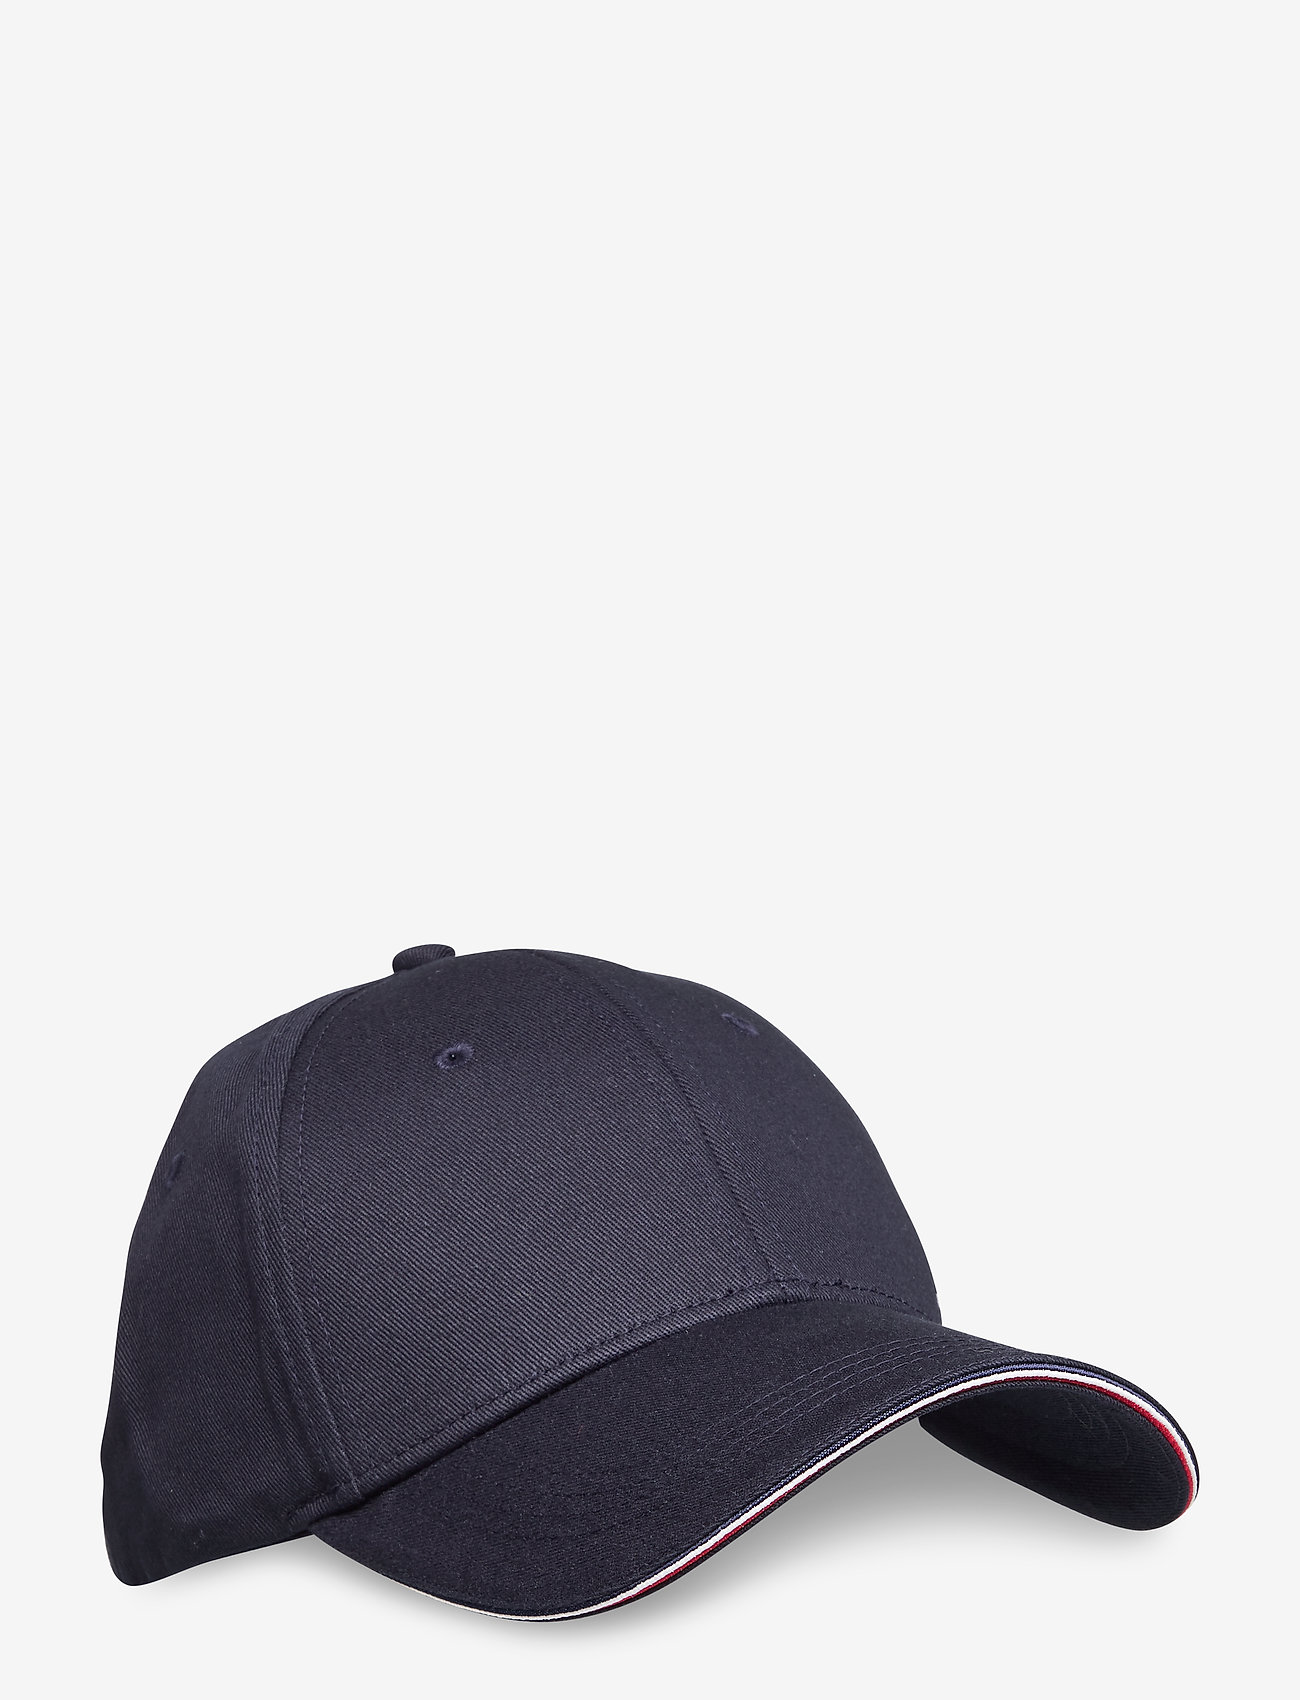 Tommy Hilfiger - ELEVATED CORPORATE CAP - casquettes - sky captain - 0